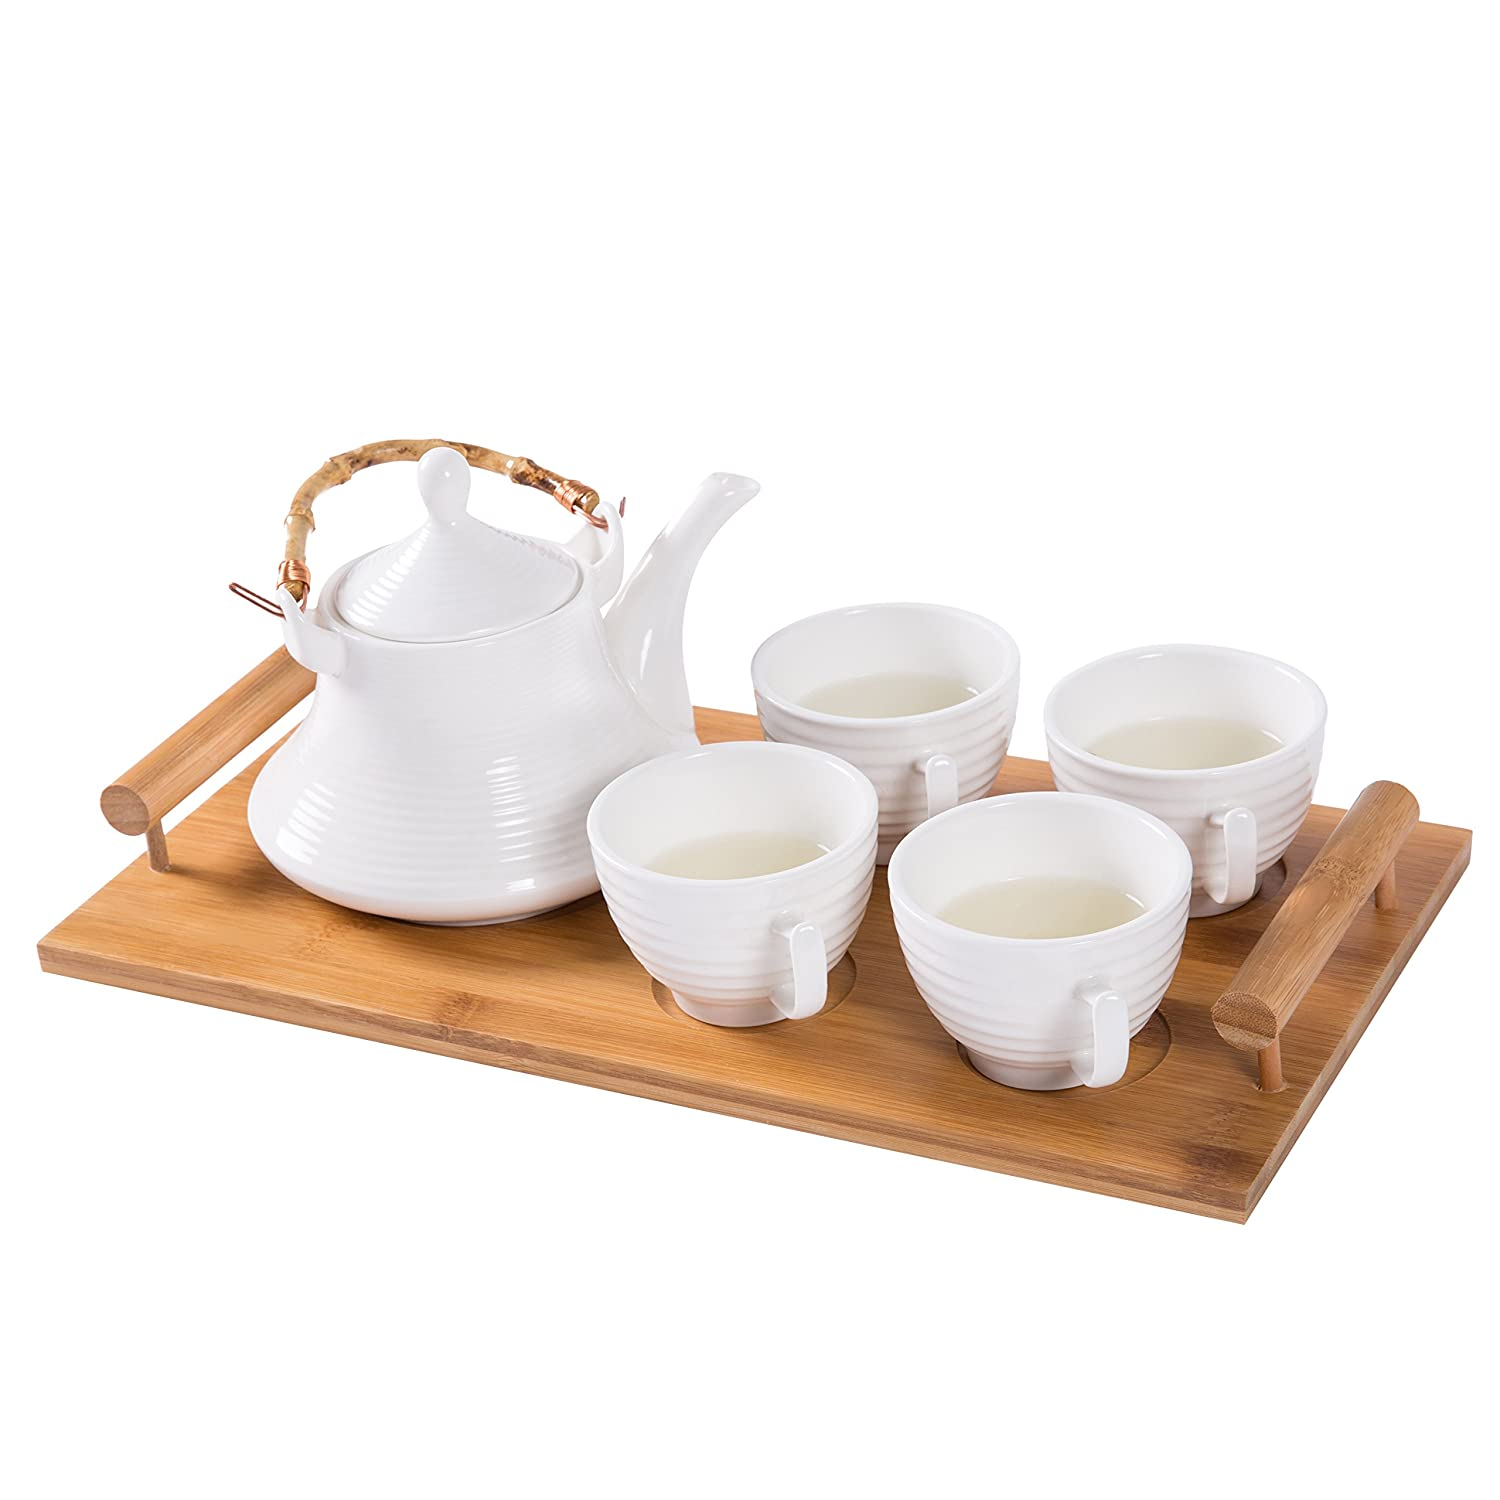 White Ceramic Tea Set with Teapot & 4 Teacups with Ribbed Design and Bamboo Serving Tray MyGift SPOMHNK1362